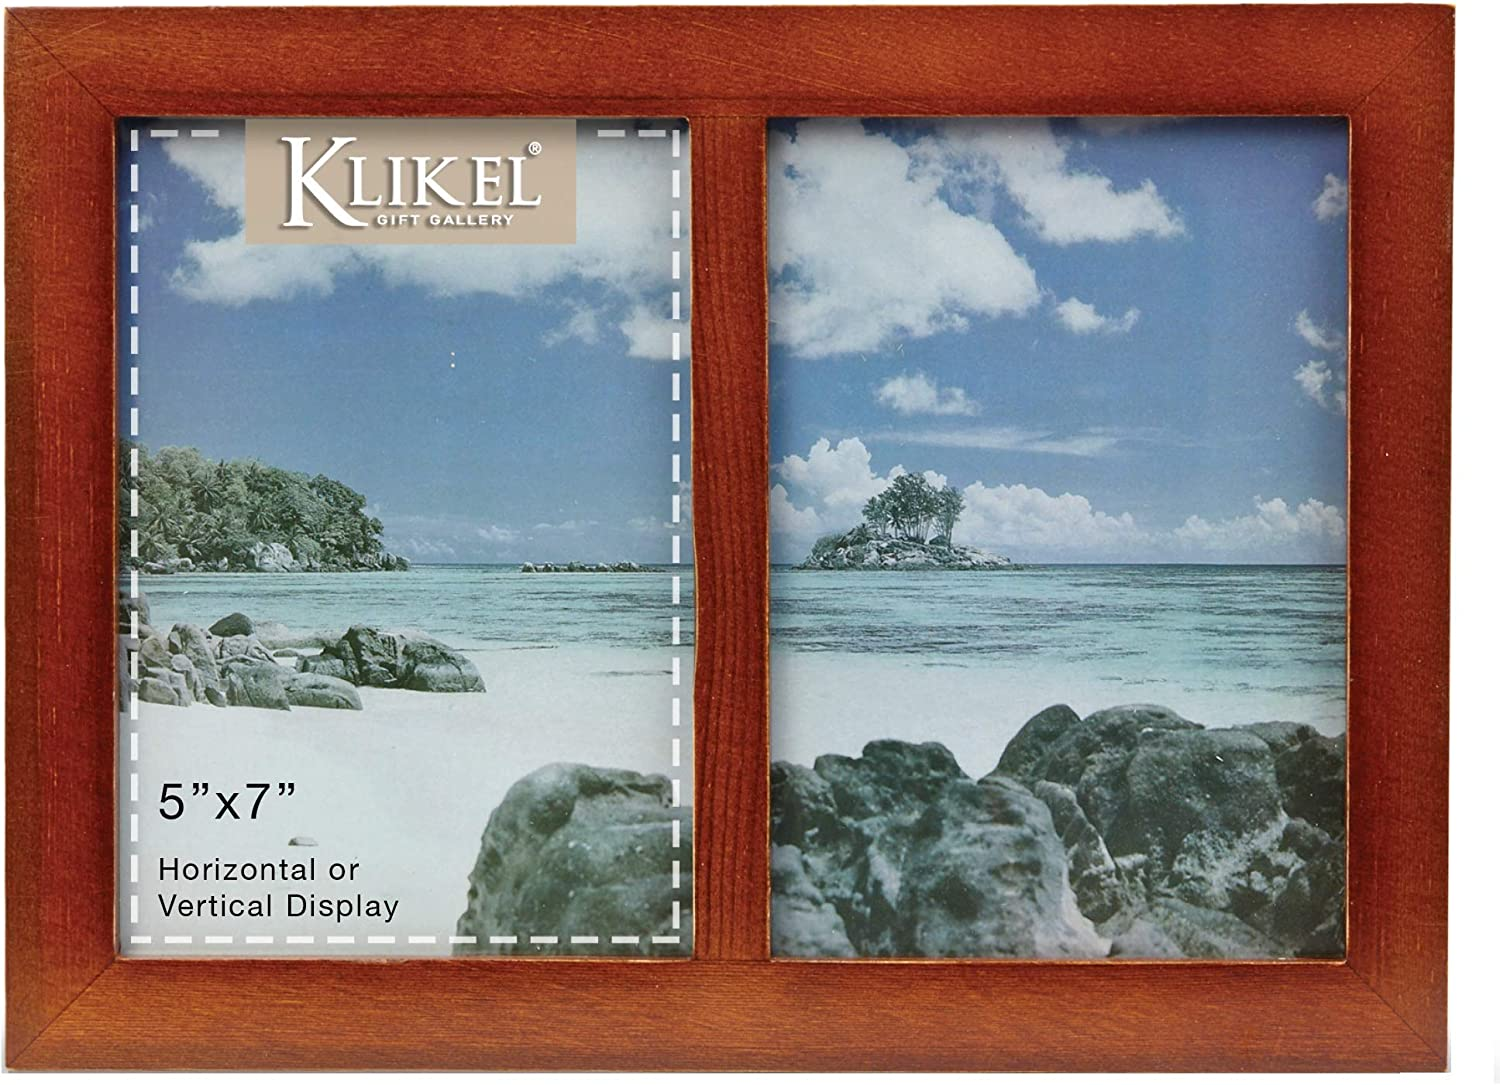 Klikel Picture Frame - Picture Frame Collage - 2 Opening Photo Frame - 5x7 Picture Frame - Solid Walnut Brown Wood Picture Frame - 2 Opening 5 X 7 Picture Slots